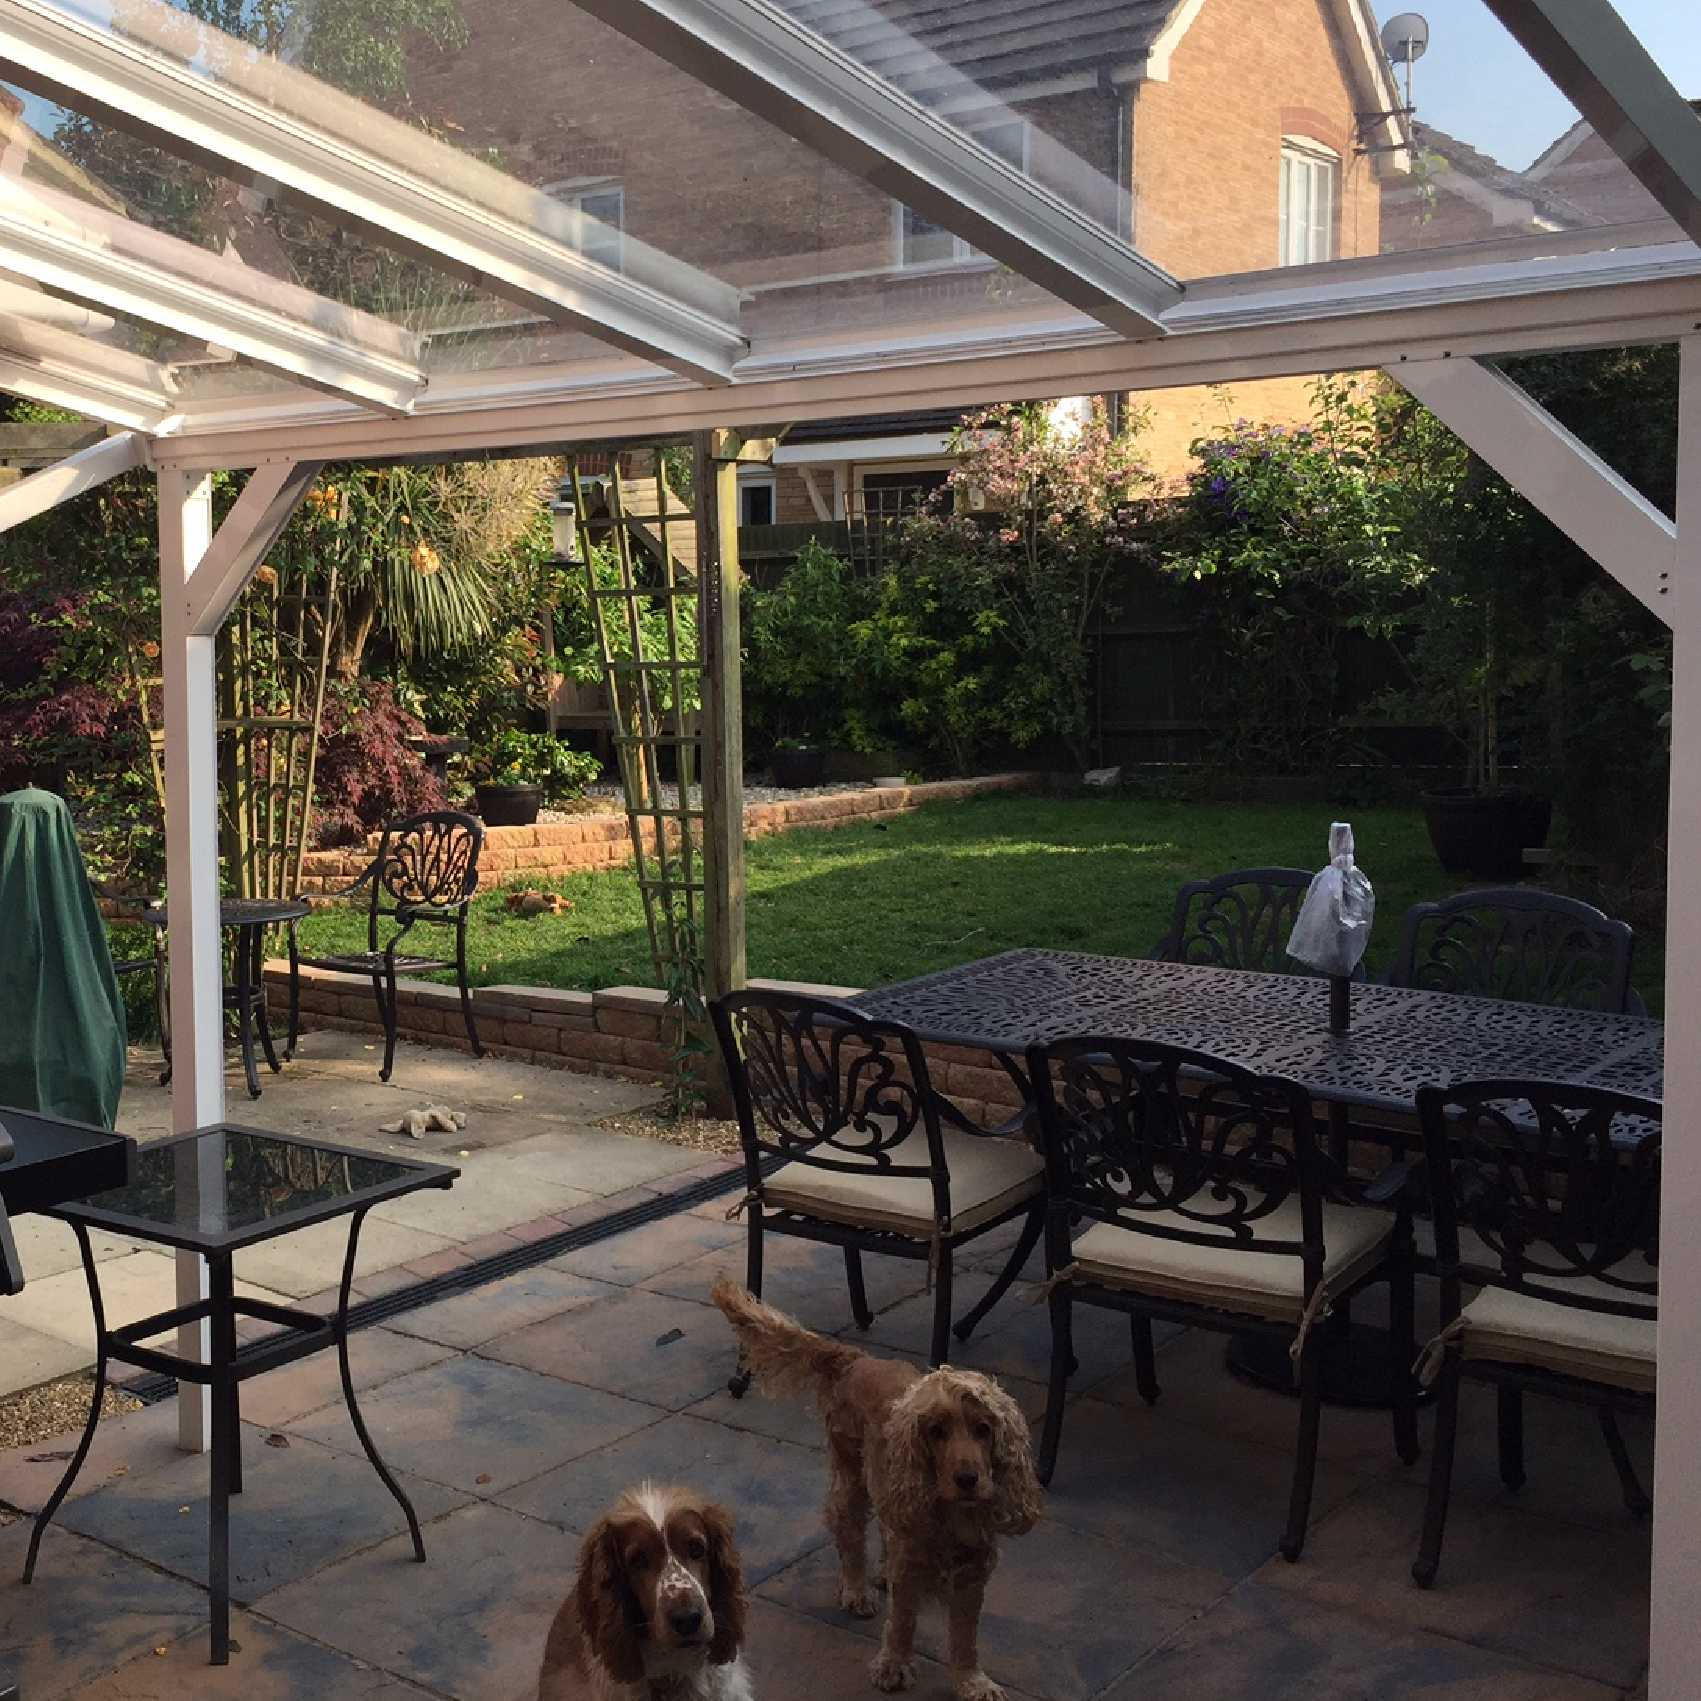 Affordable Omega Smart White Lean-To Canopy with 6mm Glass Clear Plate Polycarbonate Glazing - 7.4m (W) x 4.0m (P), (4) Supporting Posts